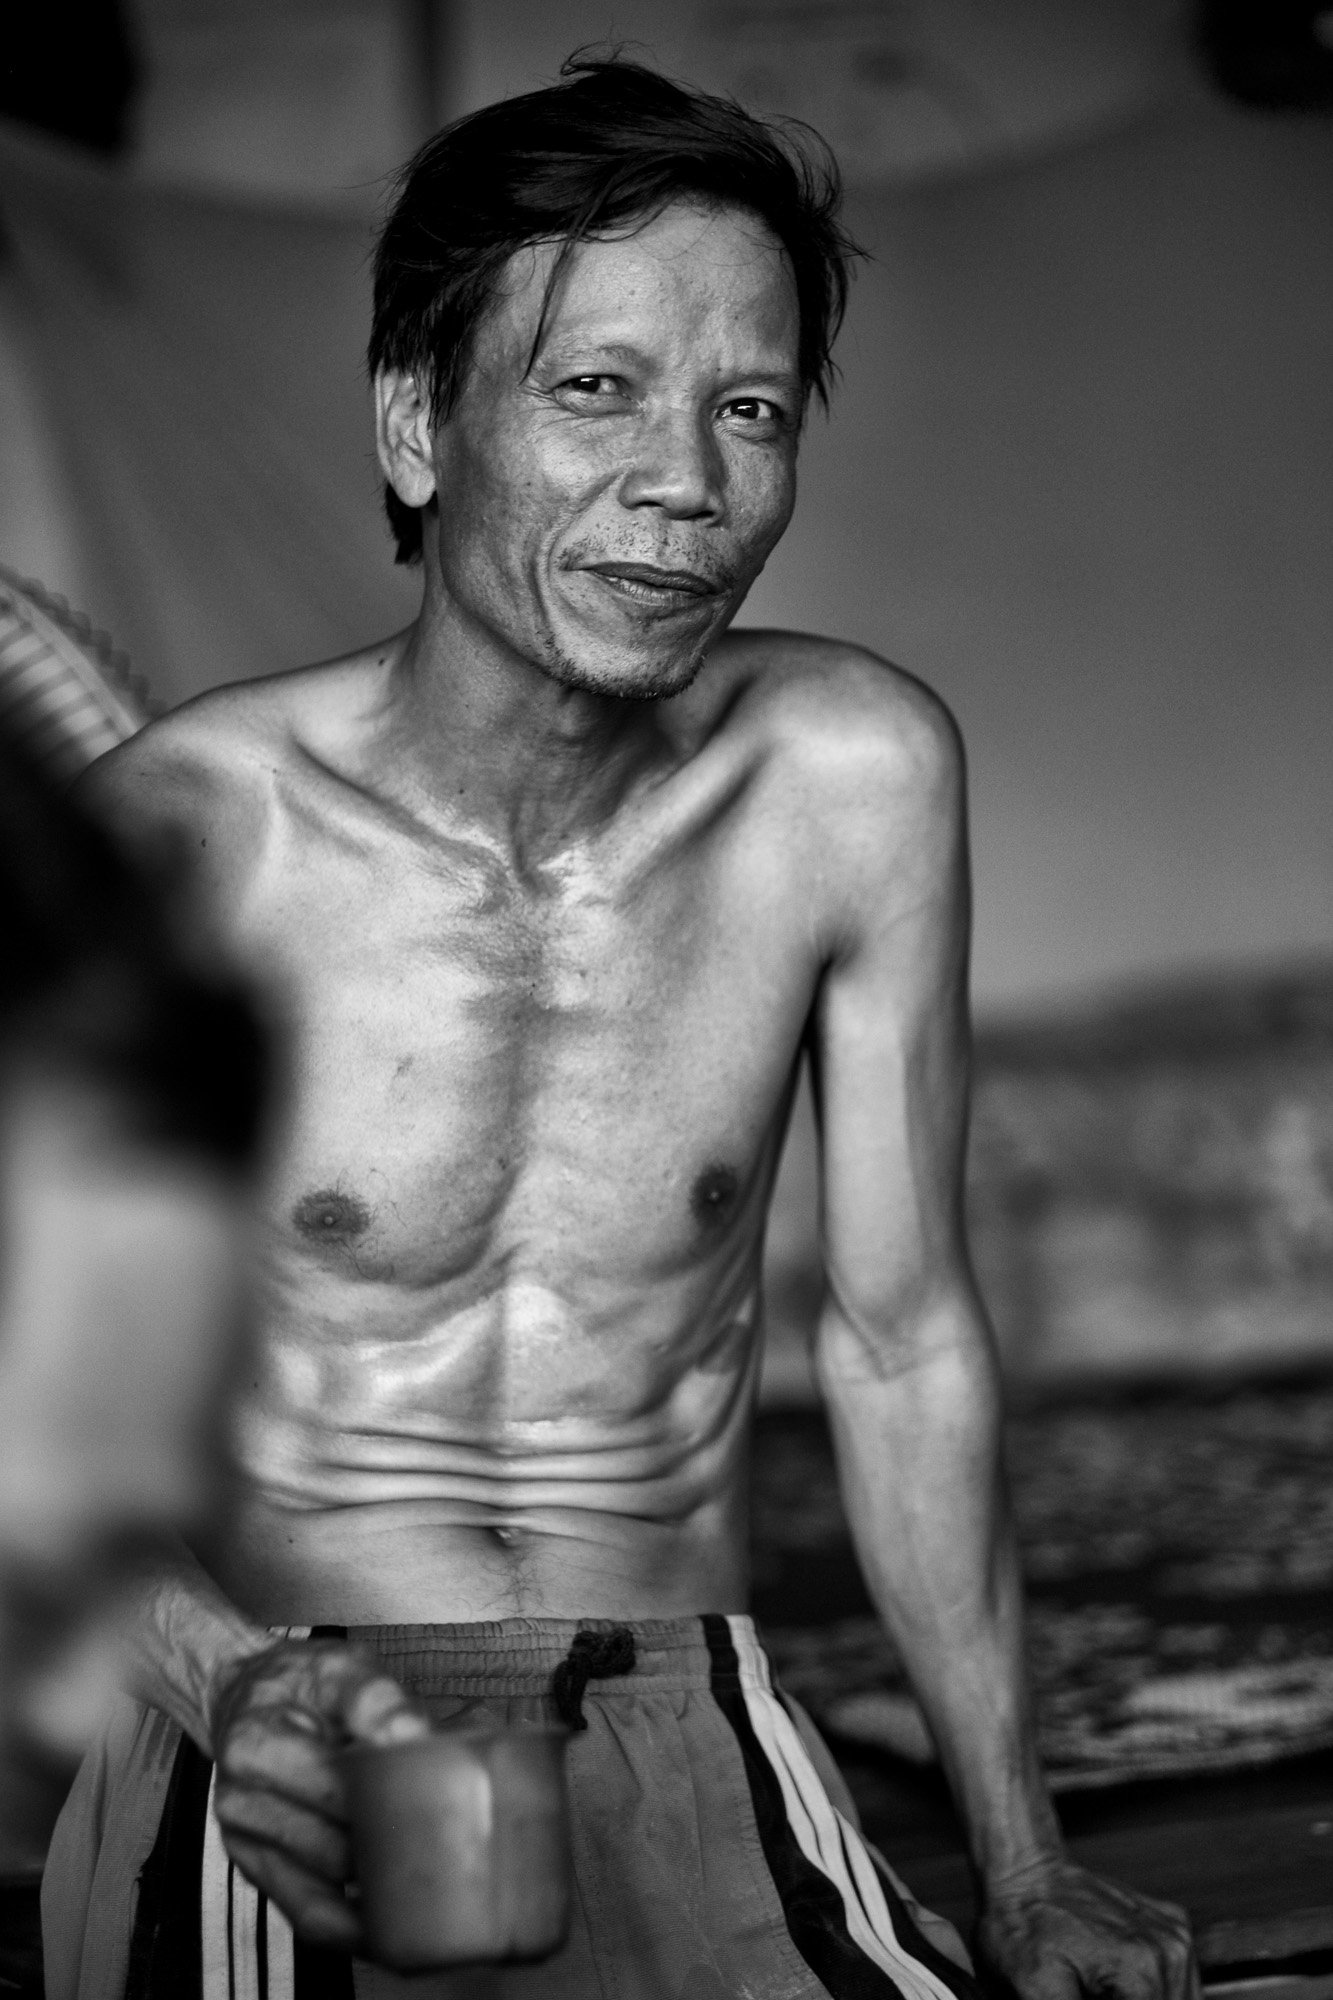 body of worker building VIENTIANE Laos asia street photography photographer